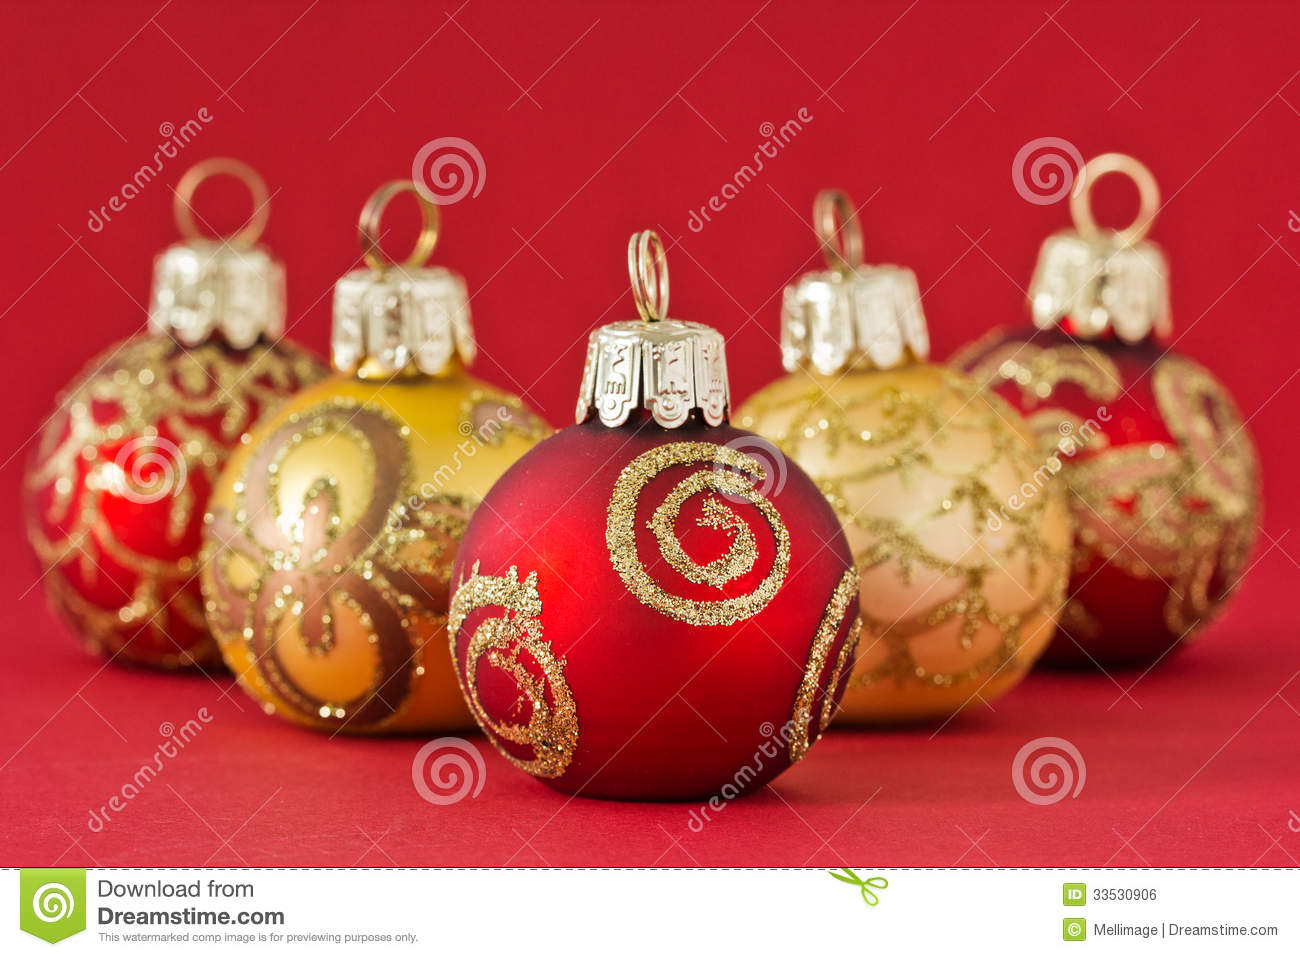 Free Illustration Background Christmas Red Gold: Red And Gold Christmas Balls Royalty Free Stock Image